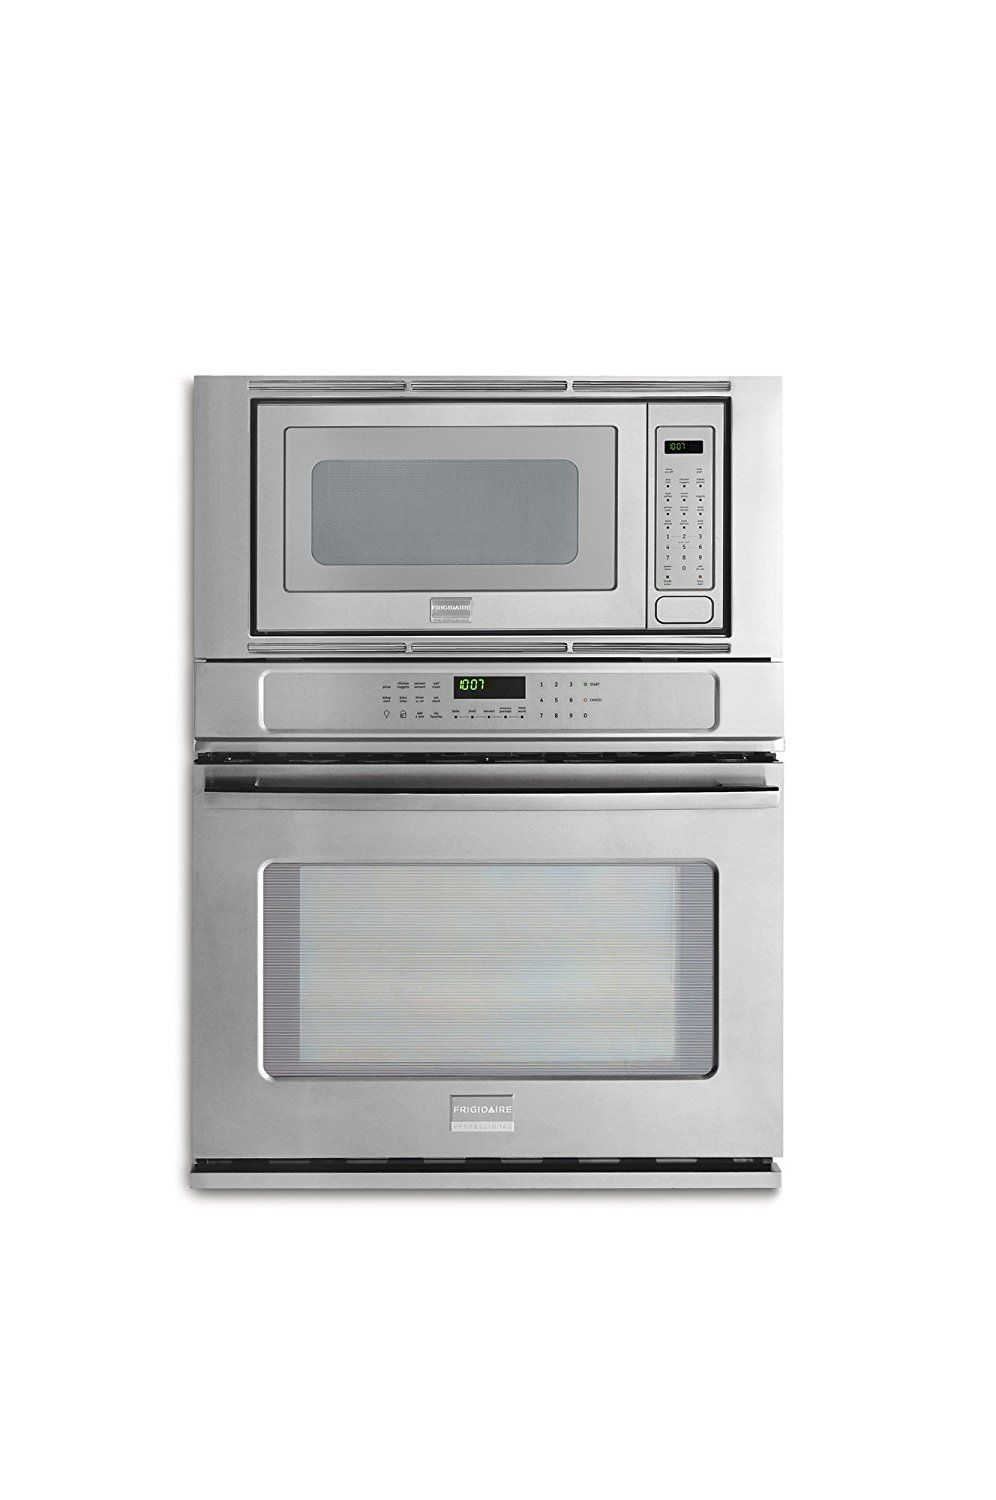 Professional Fpmc3085kf Electric Oven This Is An Affiliate Link See Great Product